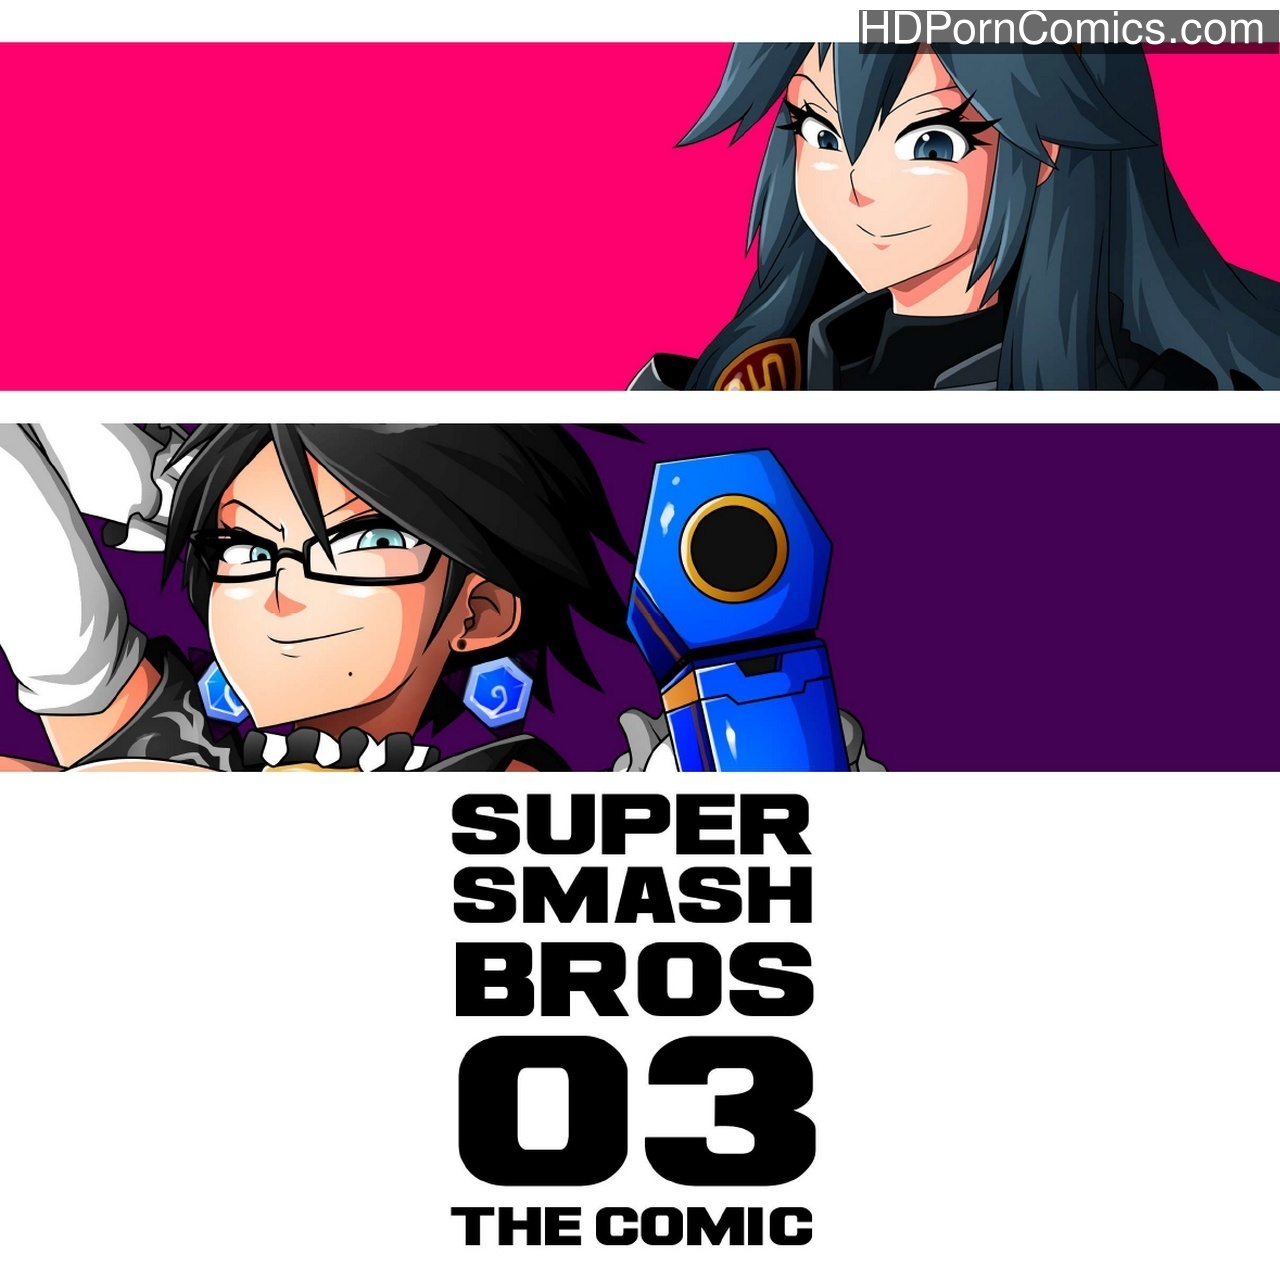 Super Smash Bros 3 Sex Comic